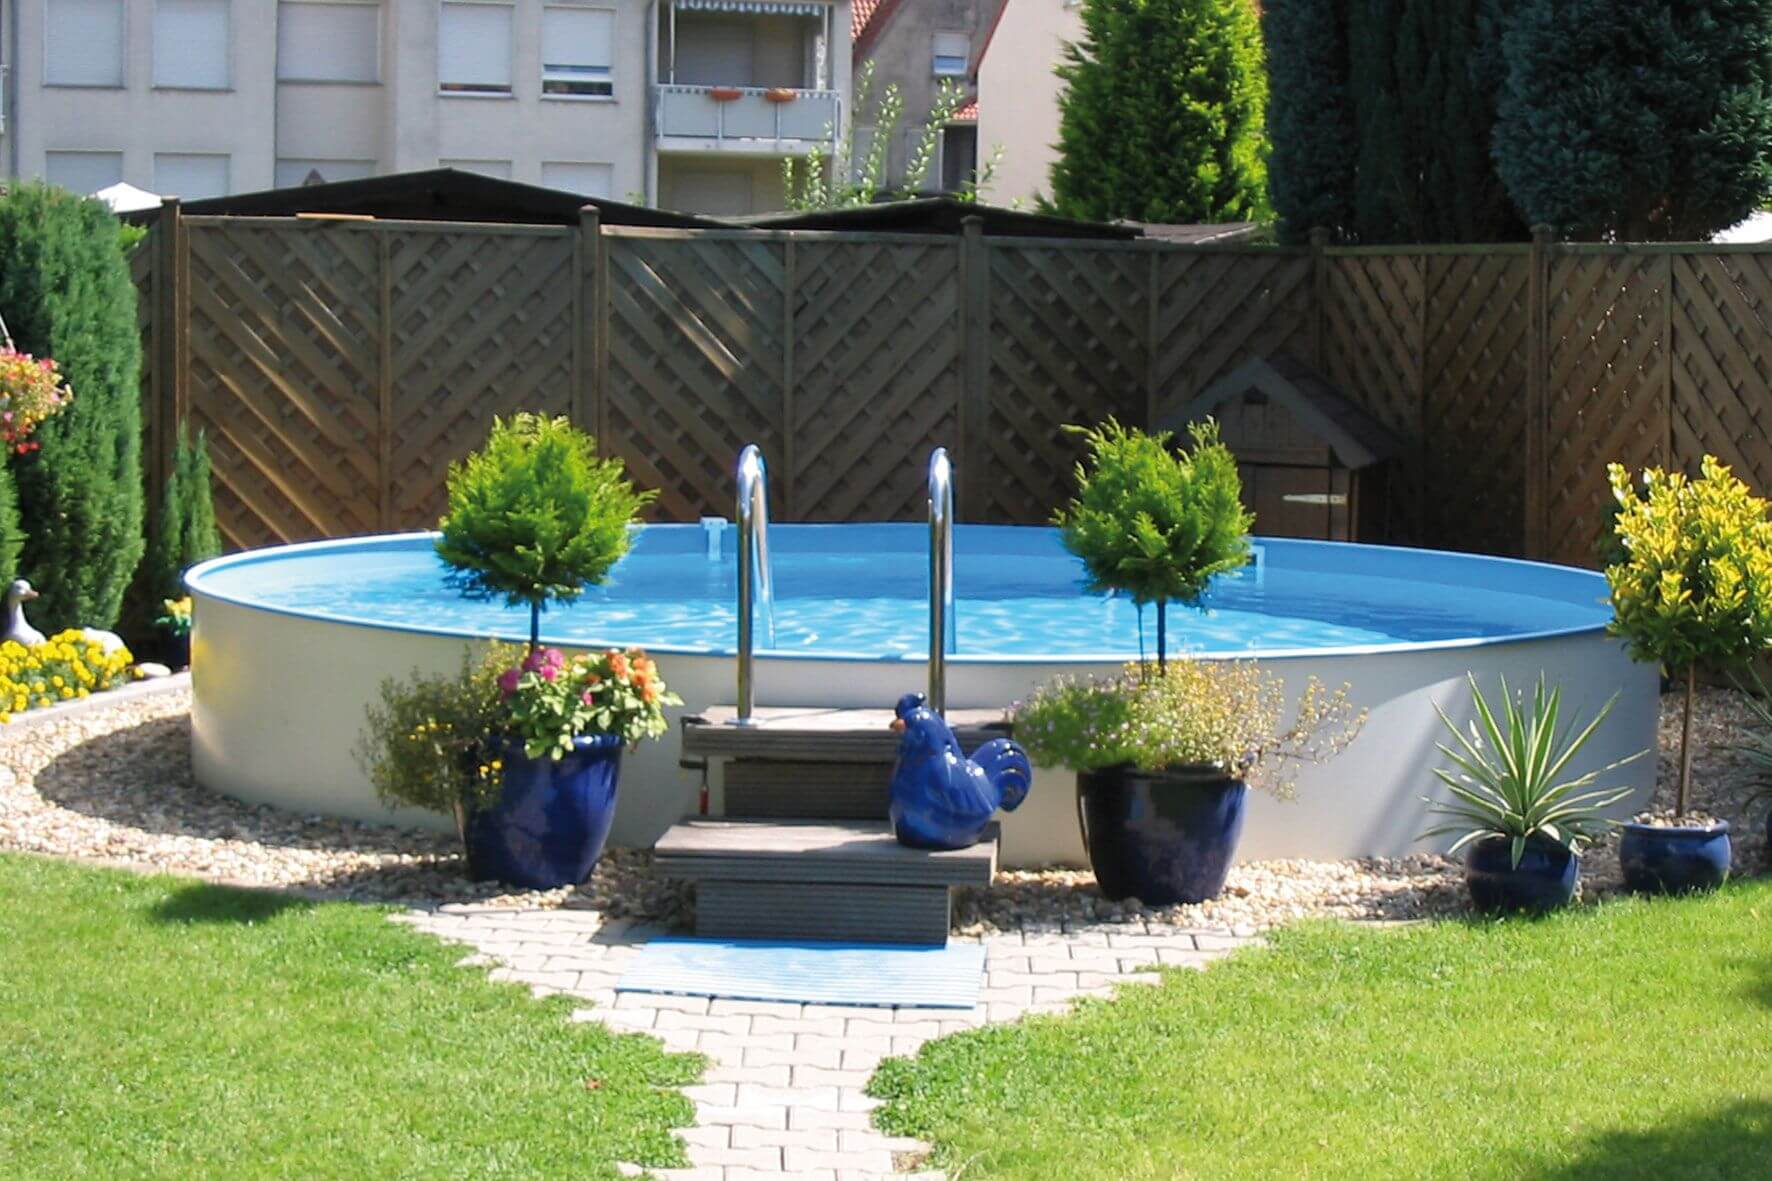 Pool Rund Stahlwandbecken Apoolco Onlineshop Für Pool Wellness